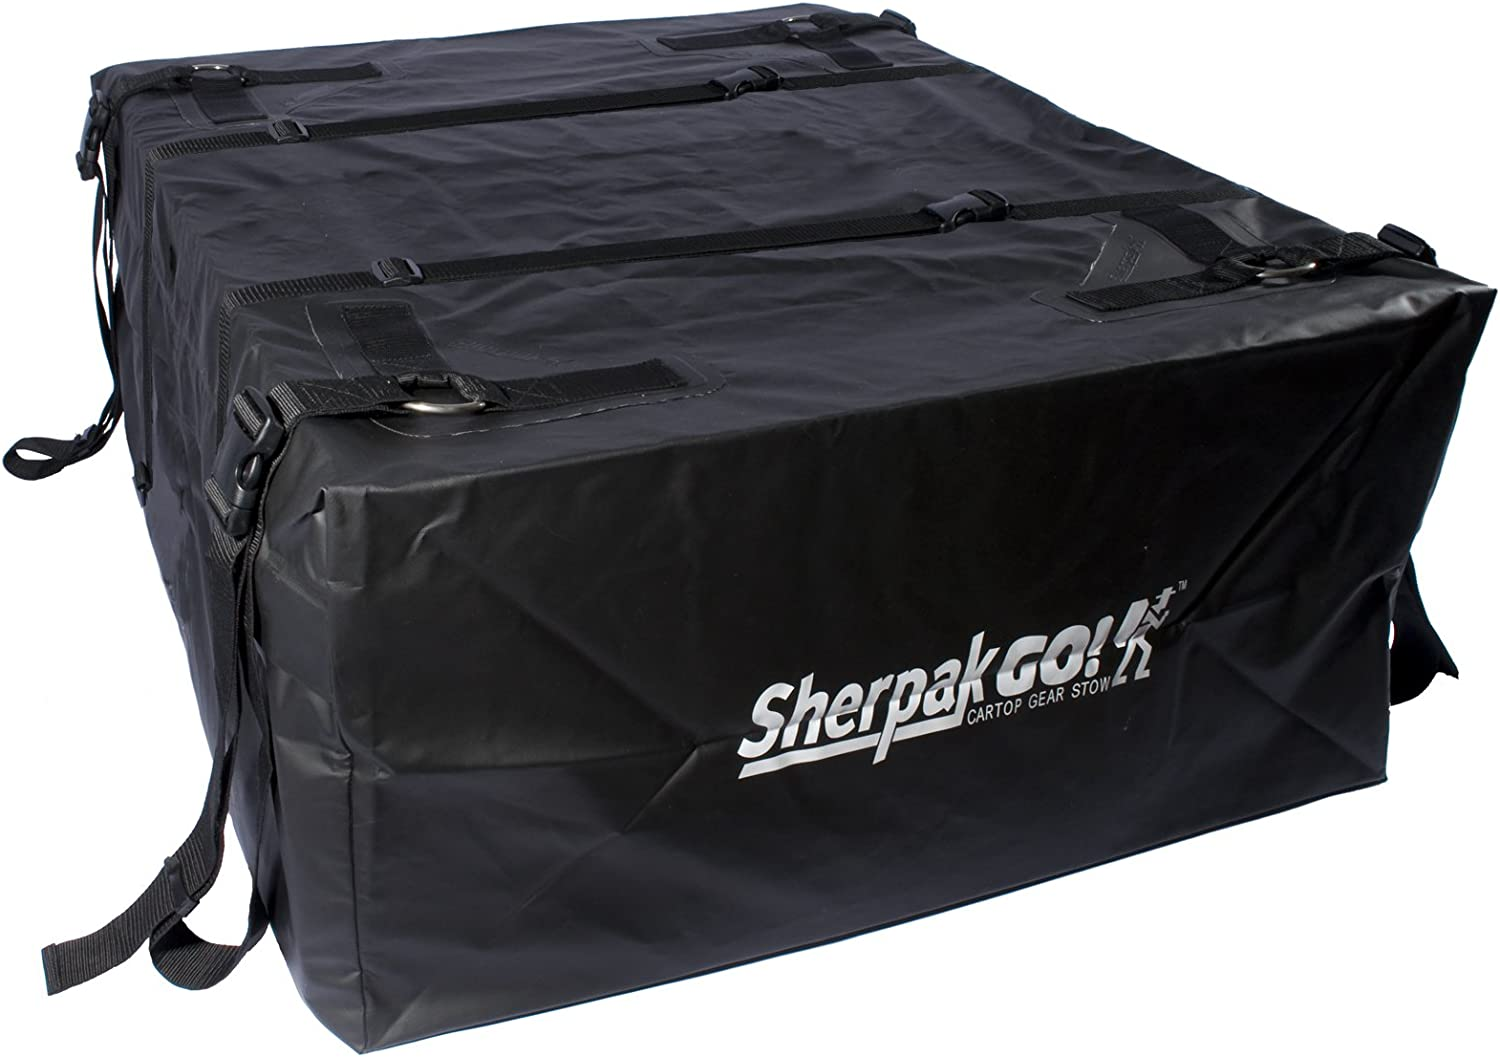 Sheprpak Go! Roof Top Cargo Bag